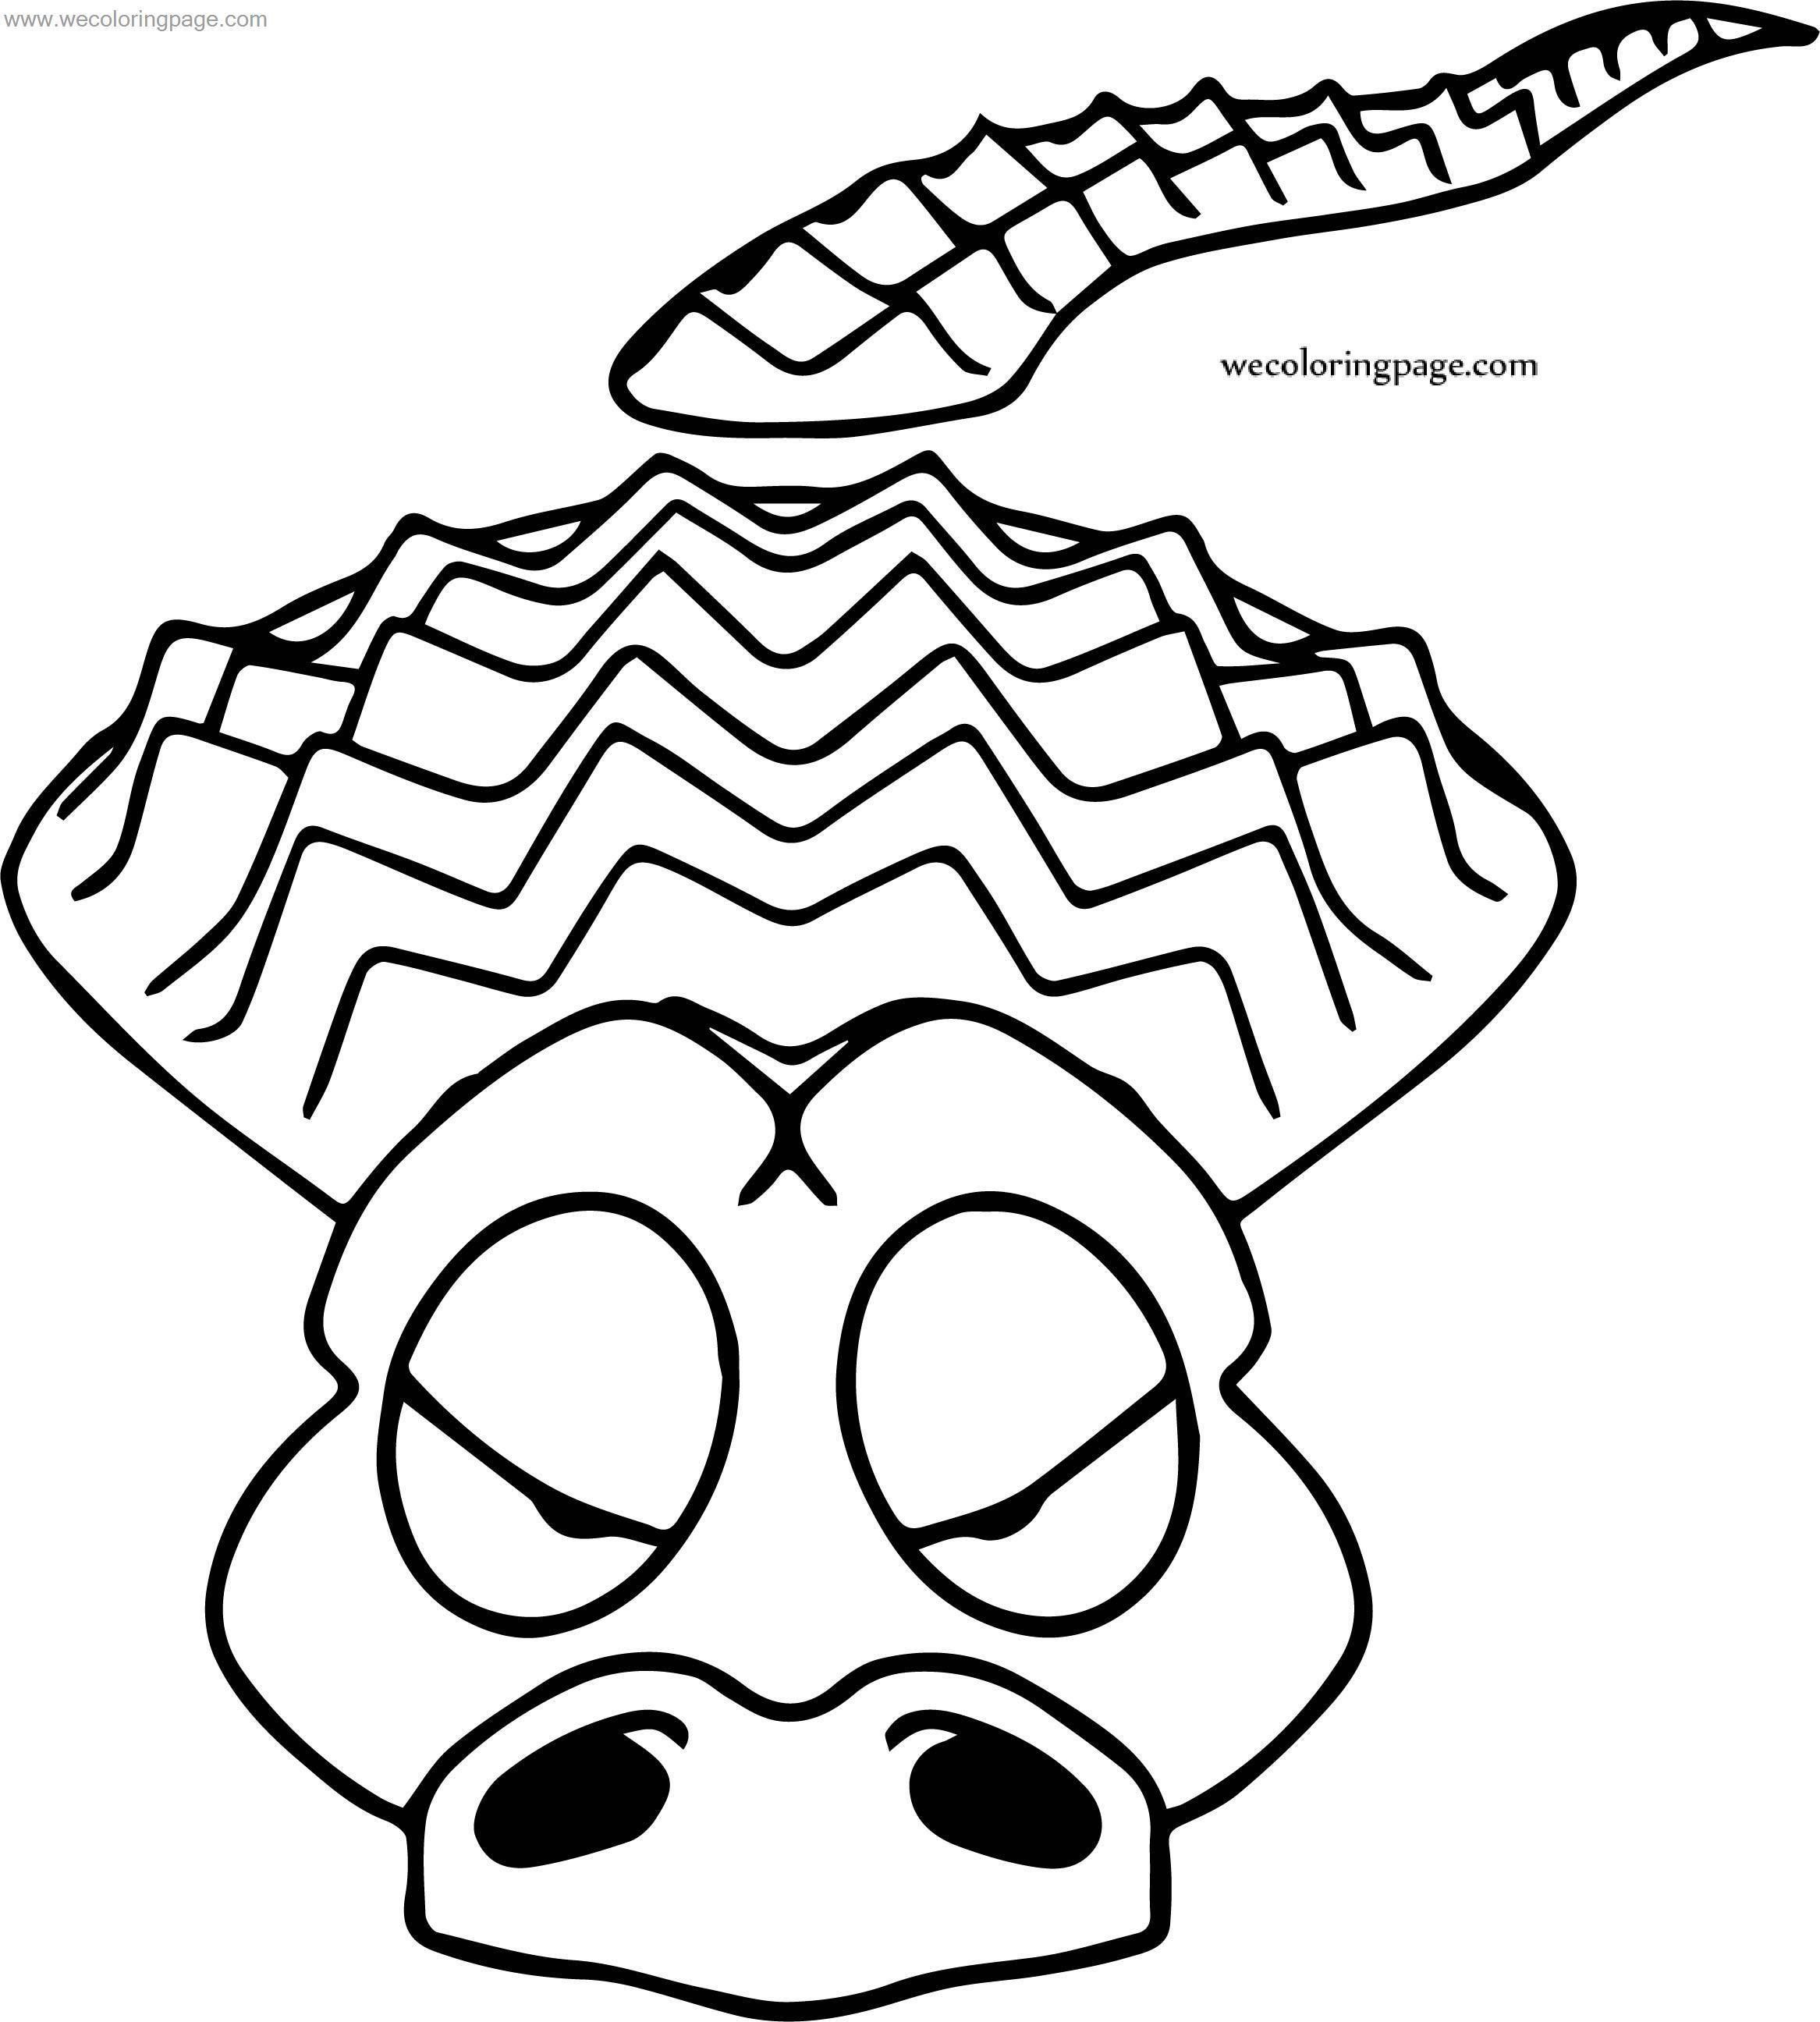 Other Crocodile Alligator Coloring Page | Wecoloringpage.com